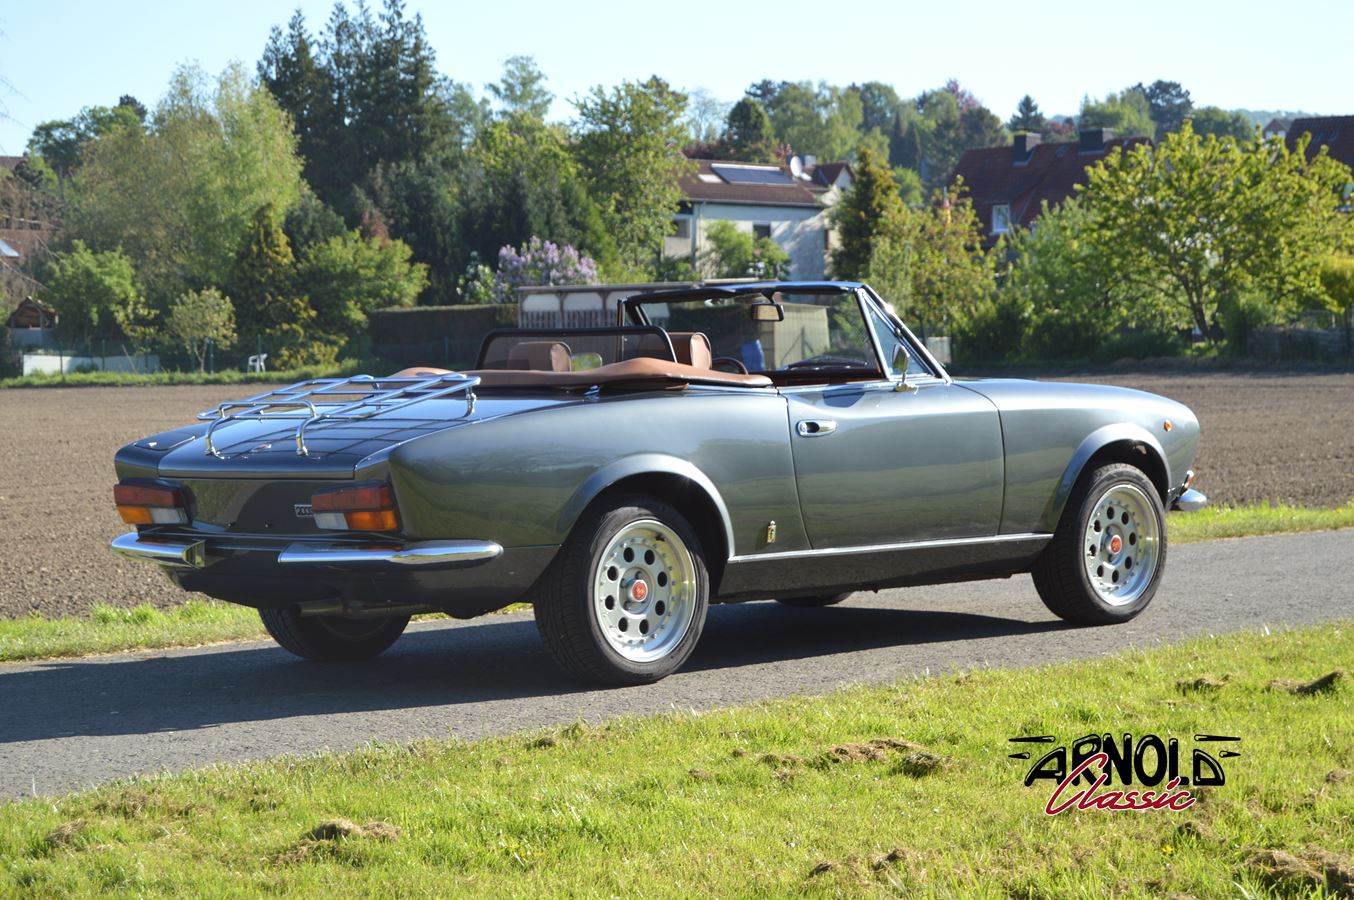 fiat 124 spider restoration arnold classic. Black Bedroom Furniture Sets. Home Design Ideas